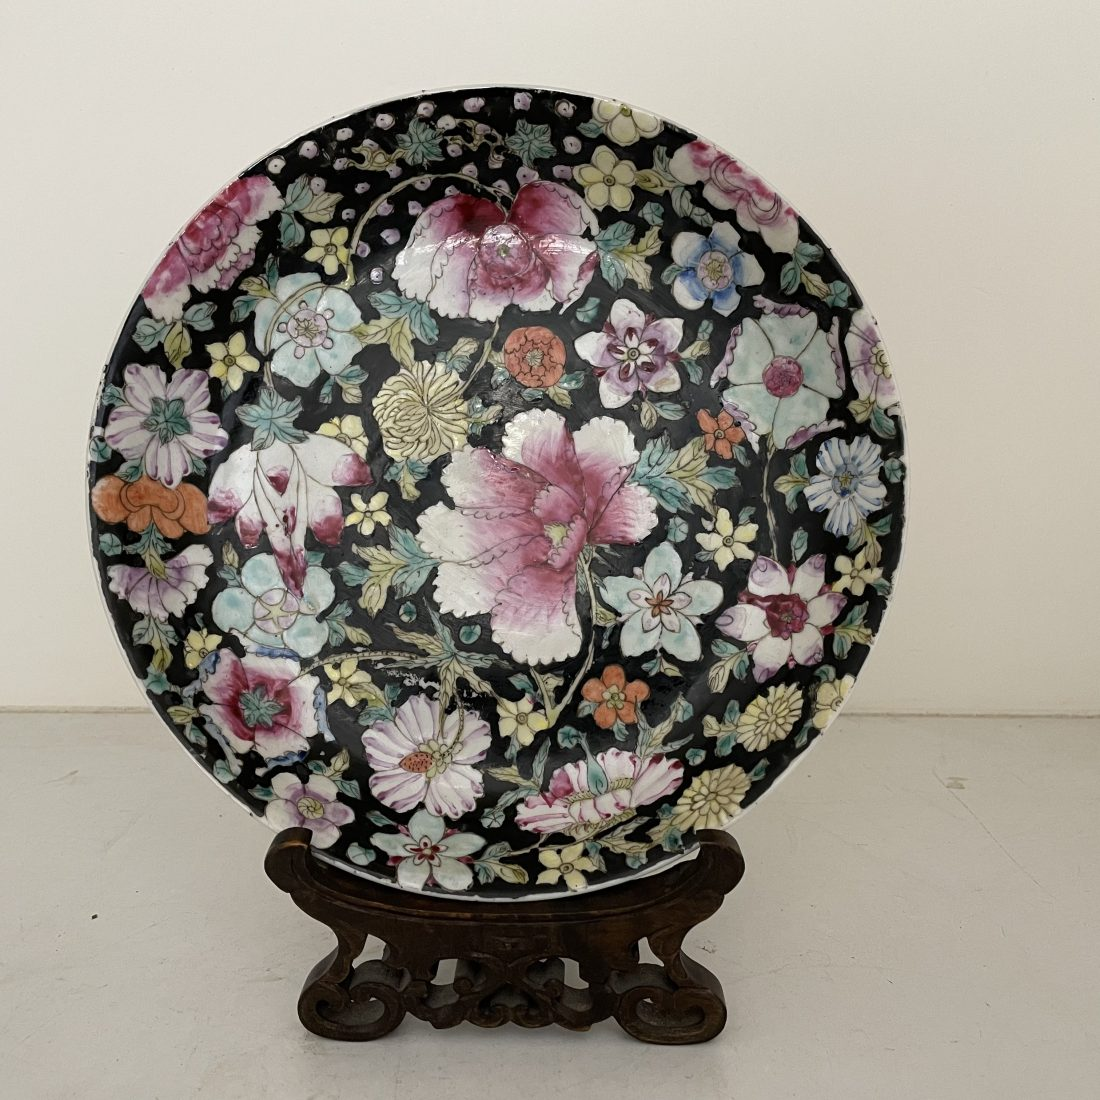 Qing Dynasty famille noir mille fleurs plate, China, 19e eeuw